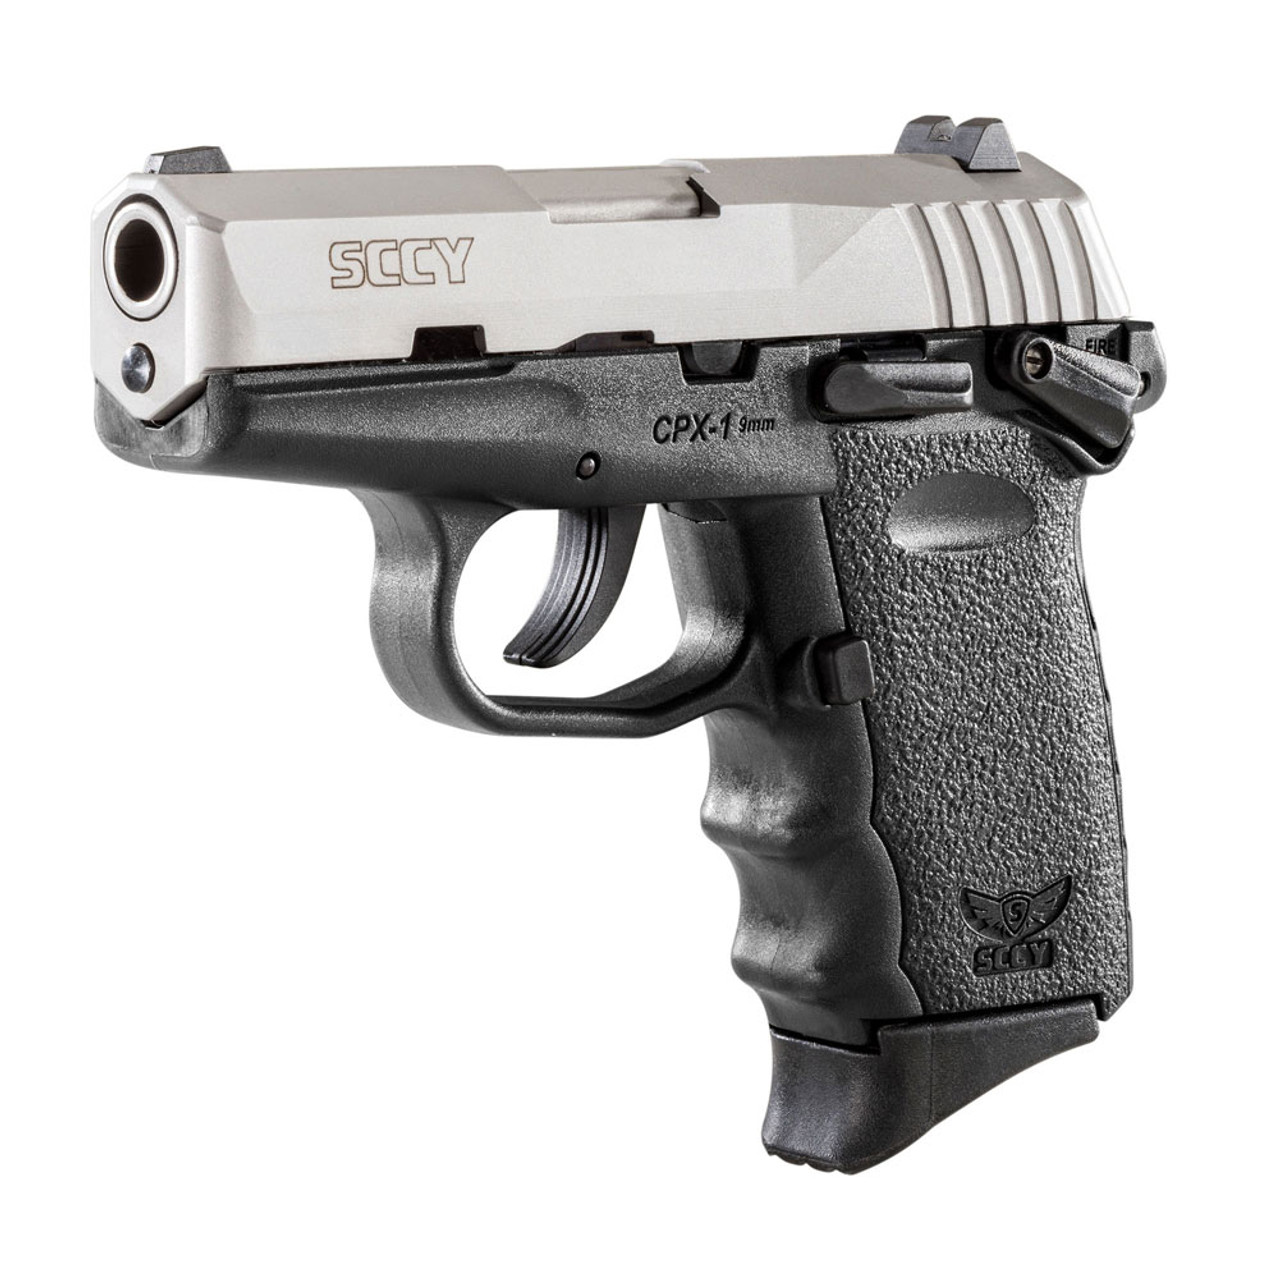 SCCY CPX-1 Compact 9mm 3 1in 10rd 3 Dot Sights Duo-Tone Pistol (CPX-1-TT)